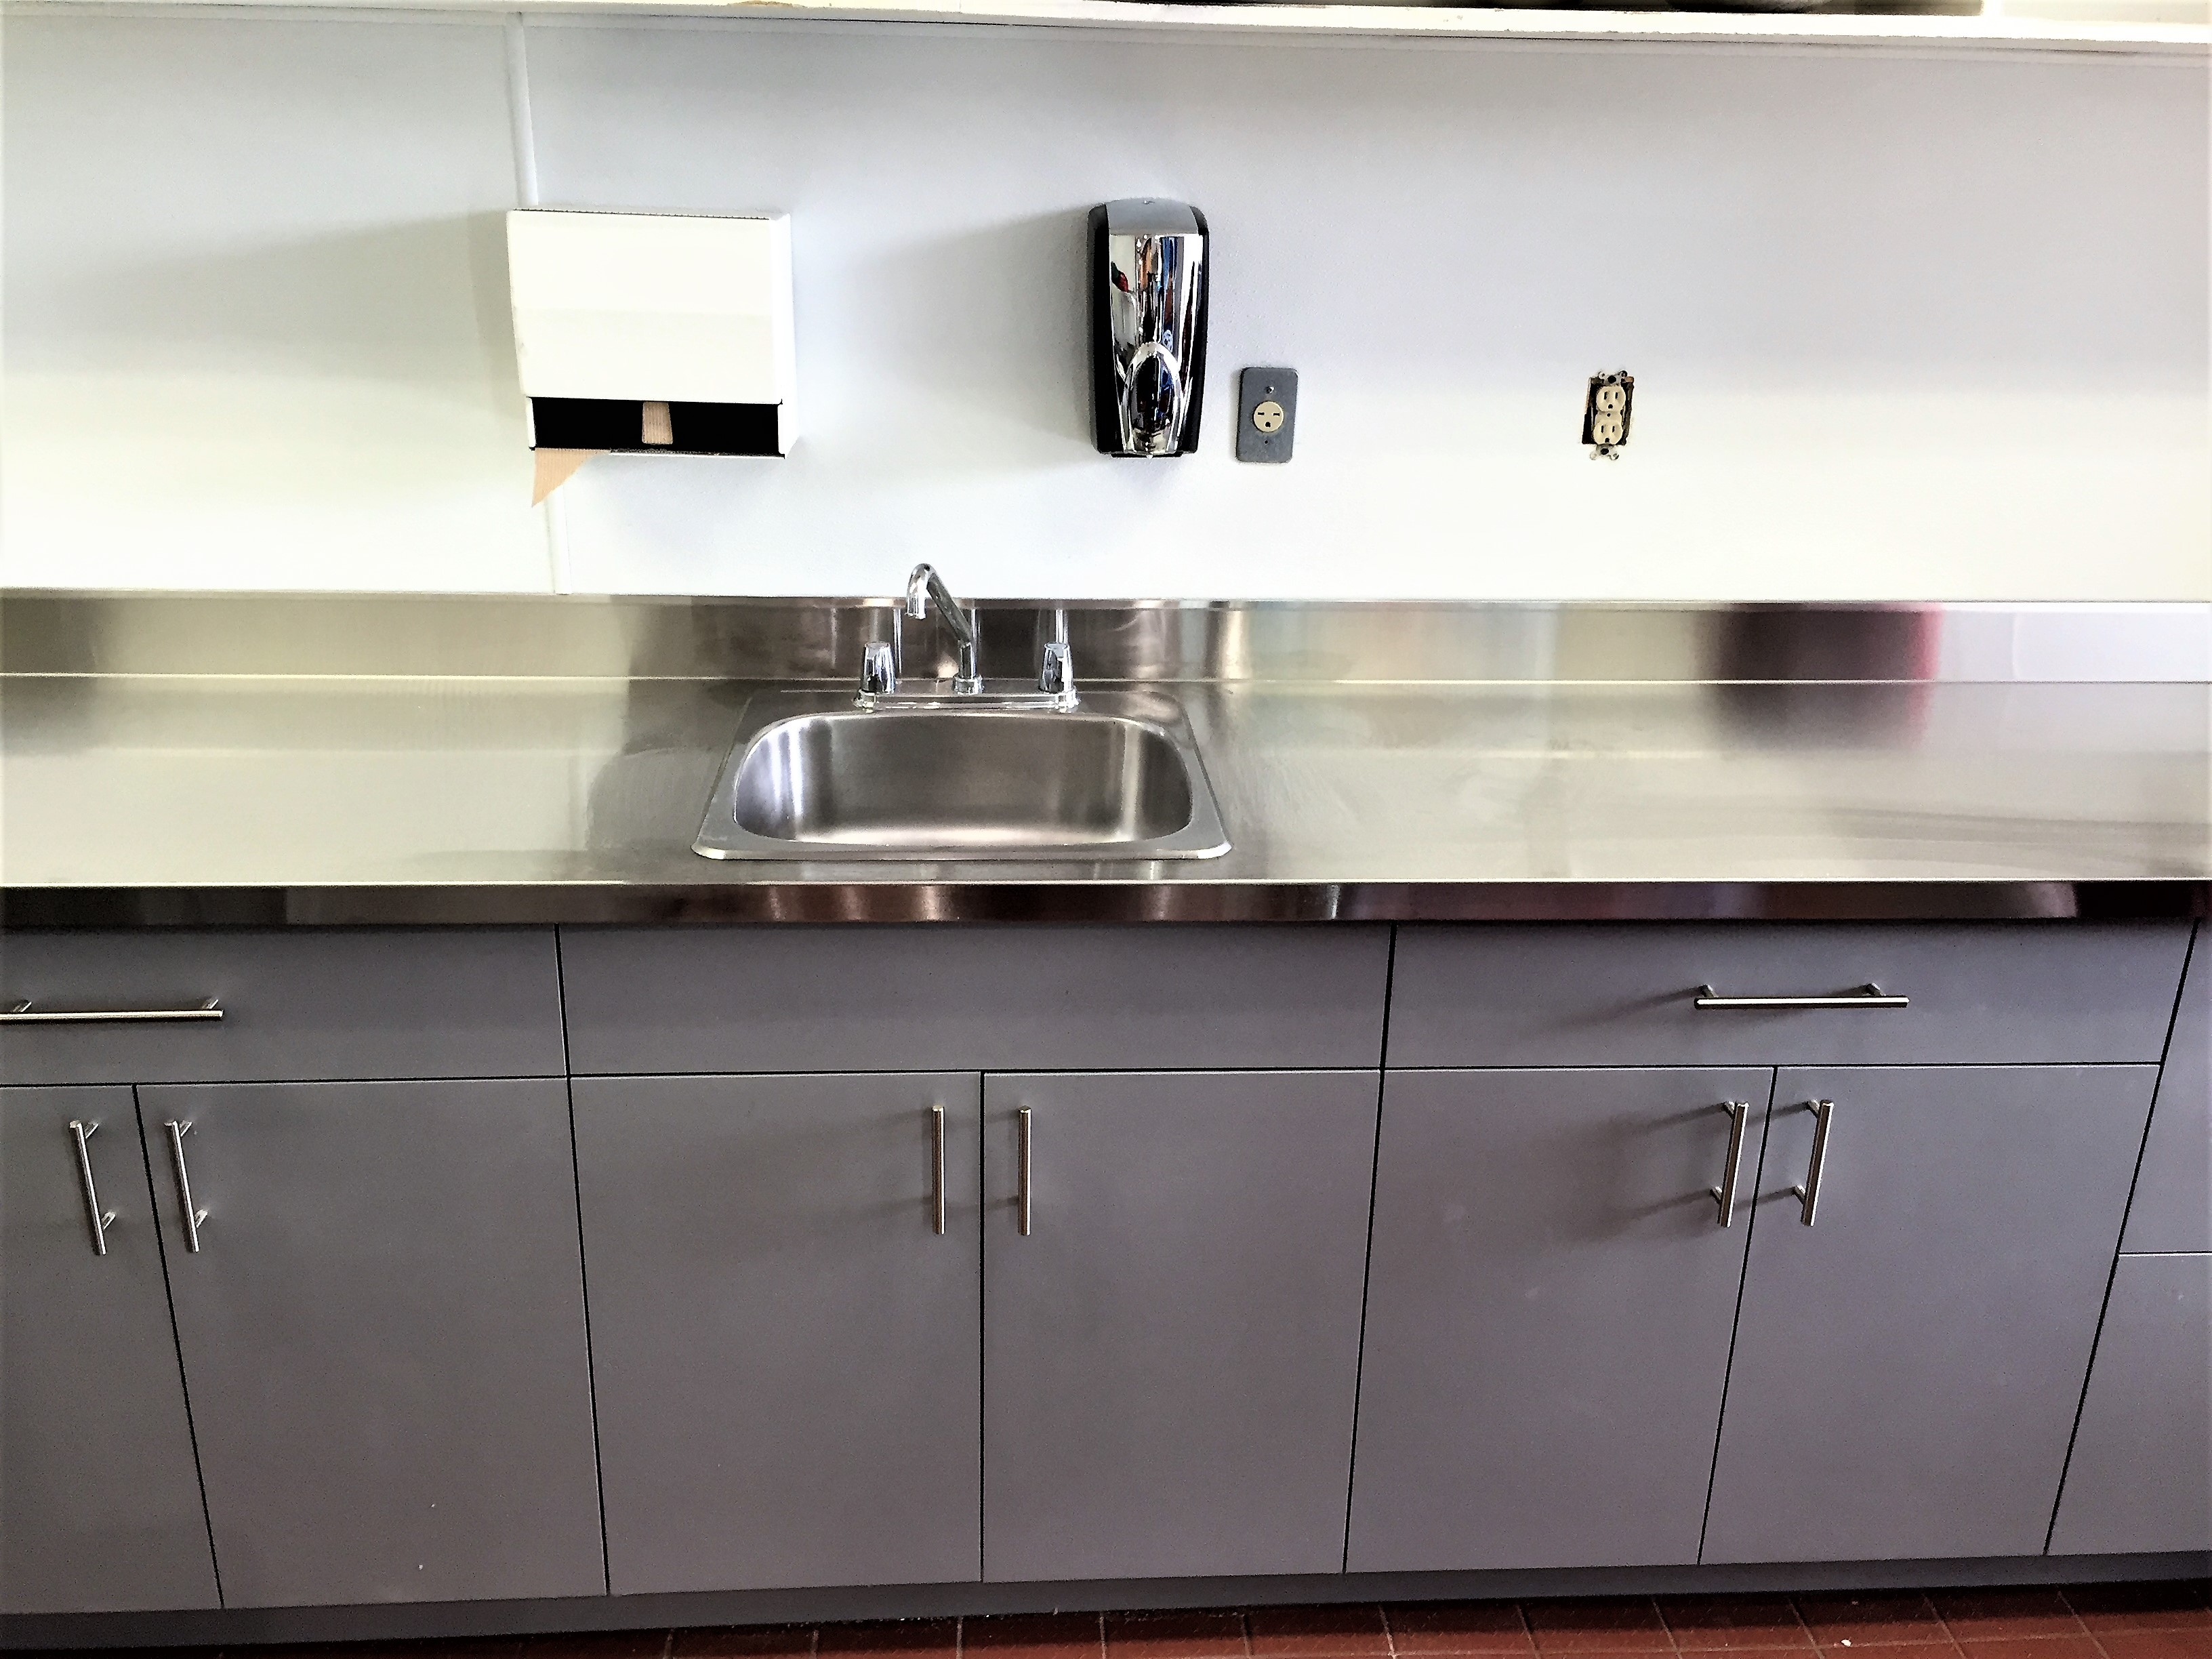 Photo Galery Kitchen Cabinetry Projects Page 3